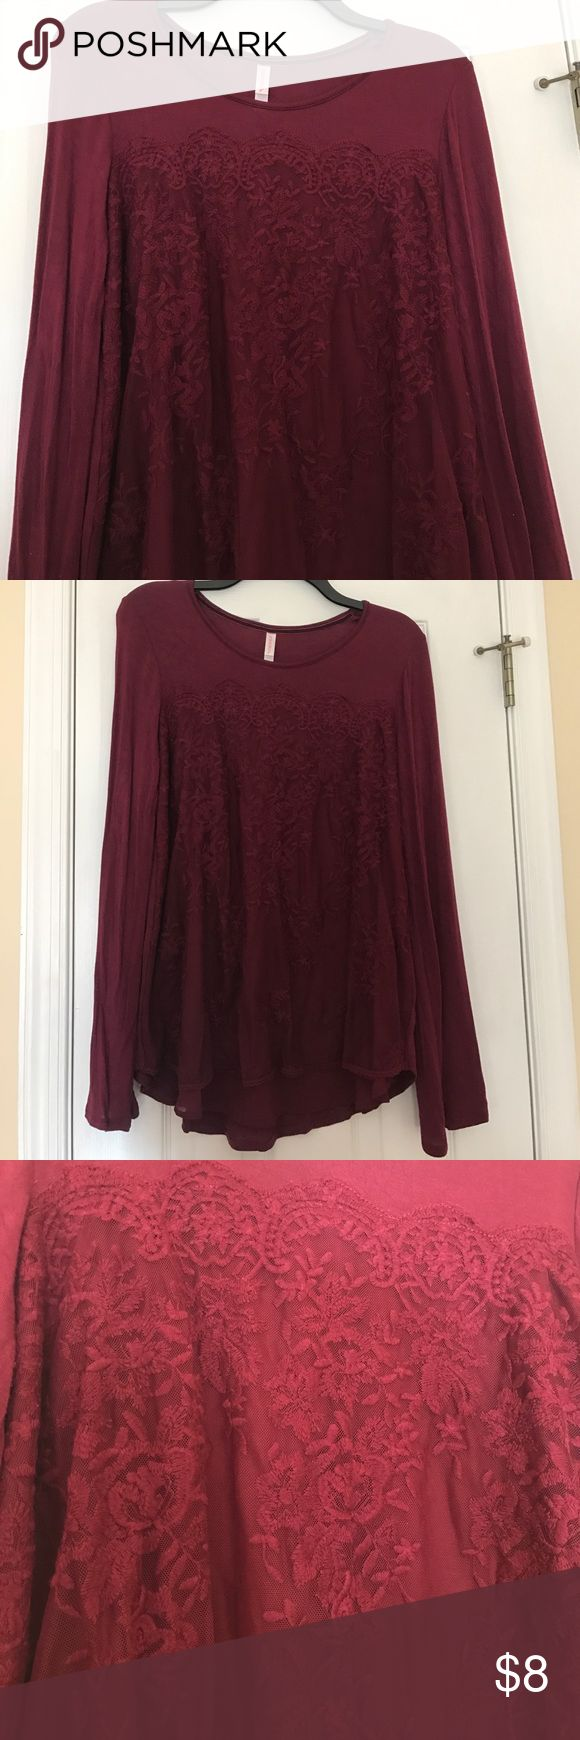 Women's xhilaration maroon top Super cute and soft maroon top by xhilaration (target), juniors size large. Long sleeved shirt with slight bell of sleeve (by wrist). The shirt has a very cute floral design on the front with cute and elegant trim along bottom of shirt. Only worn once. Smoke free home! Xhilaration Tops Blouses